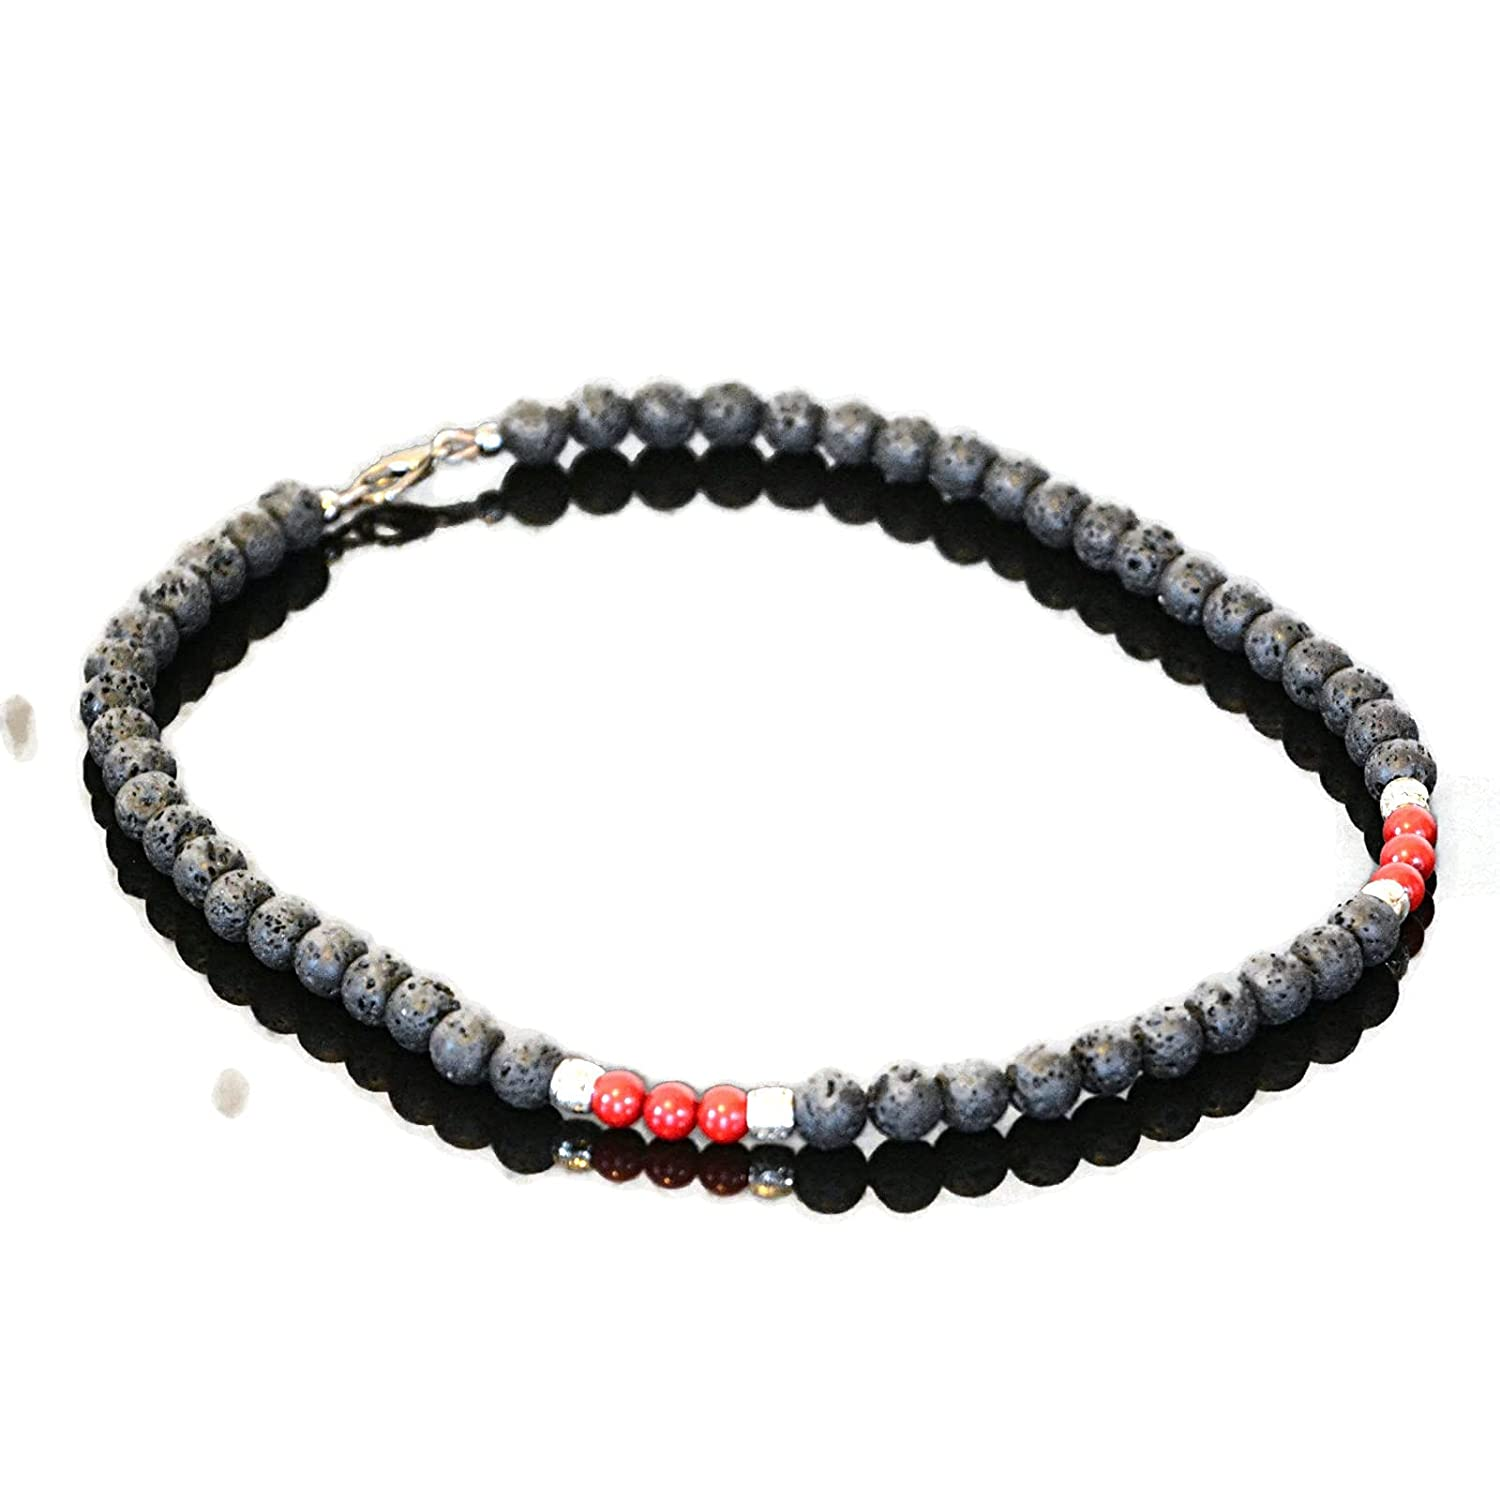 Beaded Choker Sale special price Necklace All items free shipping for Men Black Coral and Lava Red Volcanic